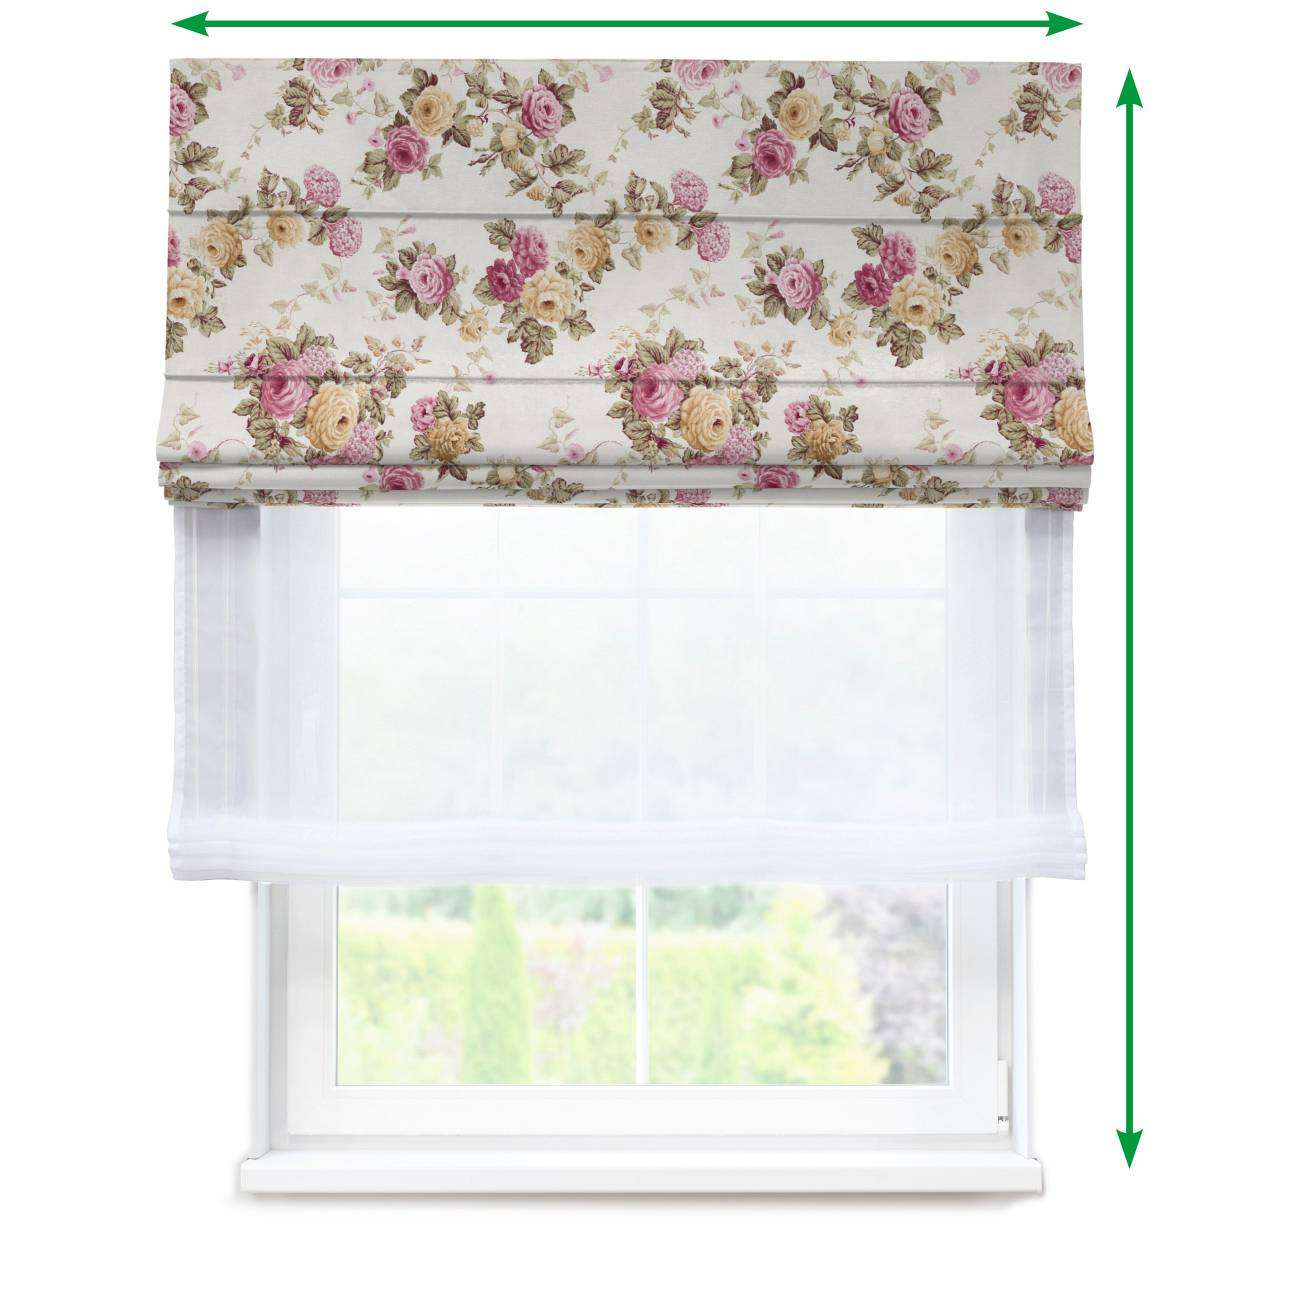 Voile and fabric roman blind (DUO II) in collection Mirella, fabric: 140-40